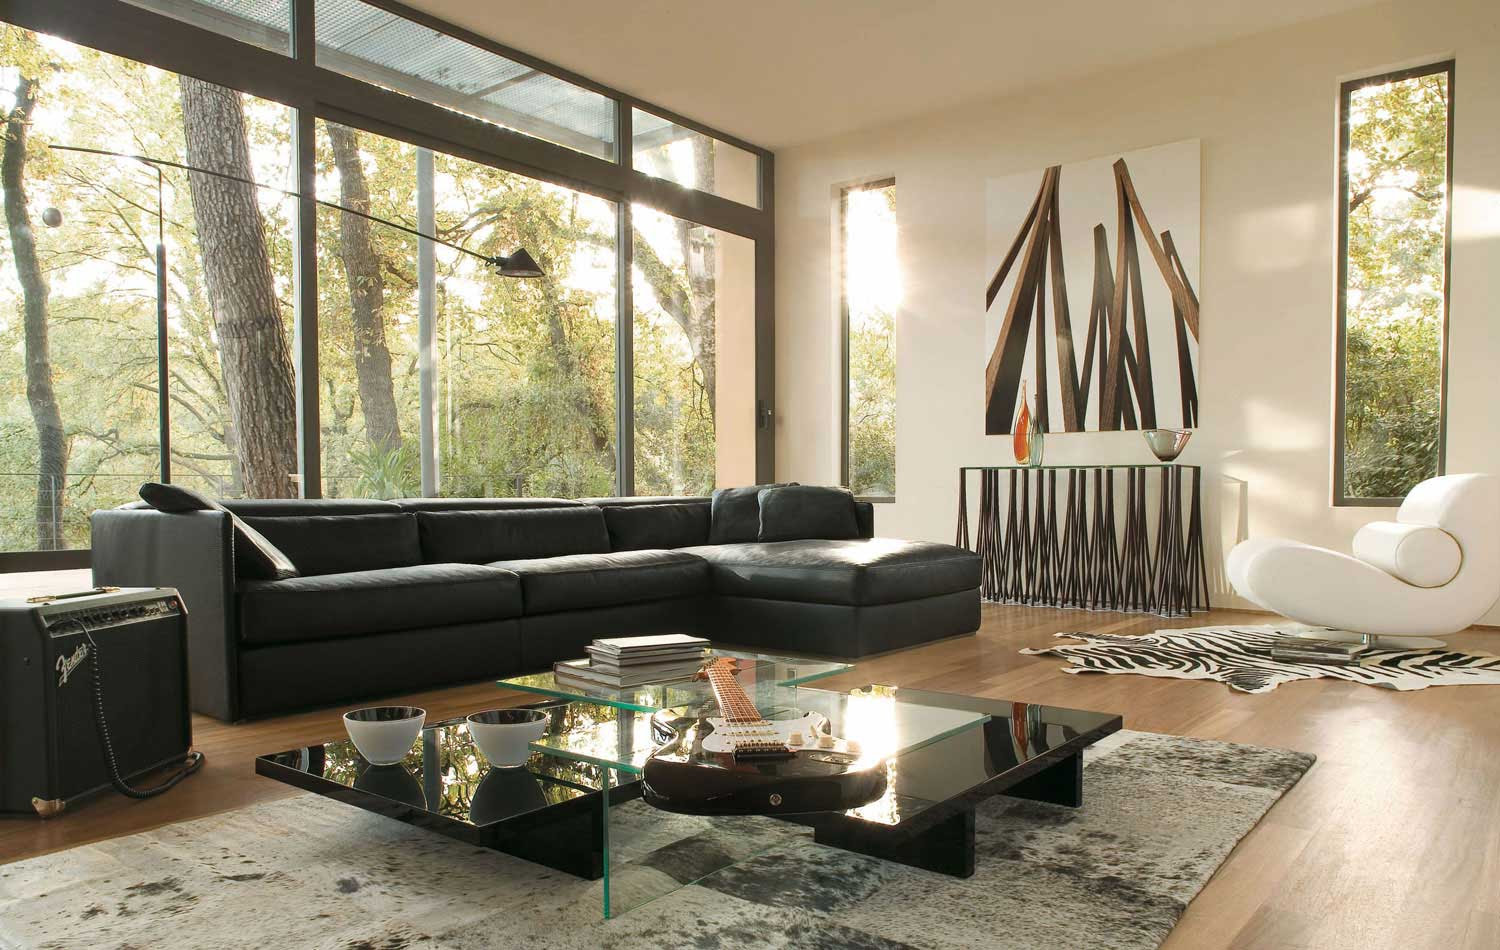 Living Room Inspiration for Your Renovating Ideas - Traba ...